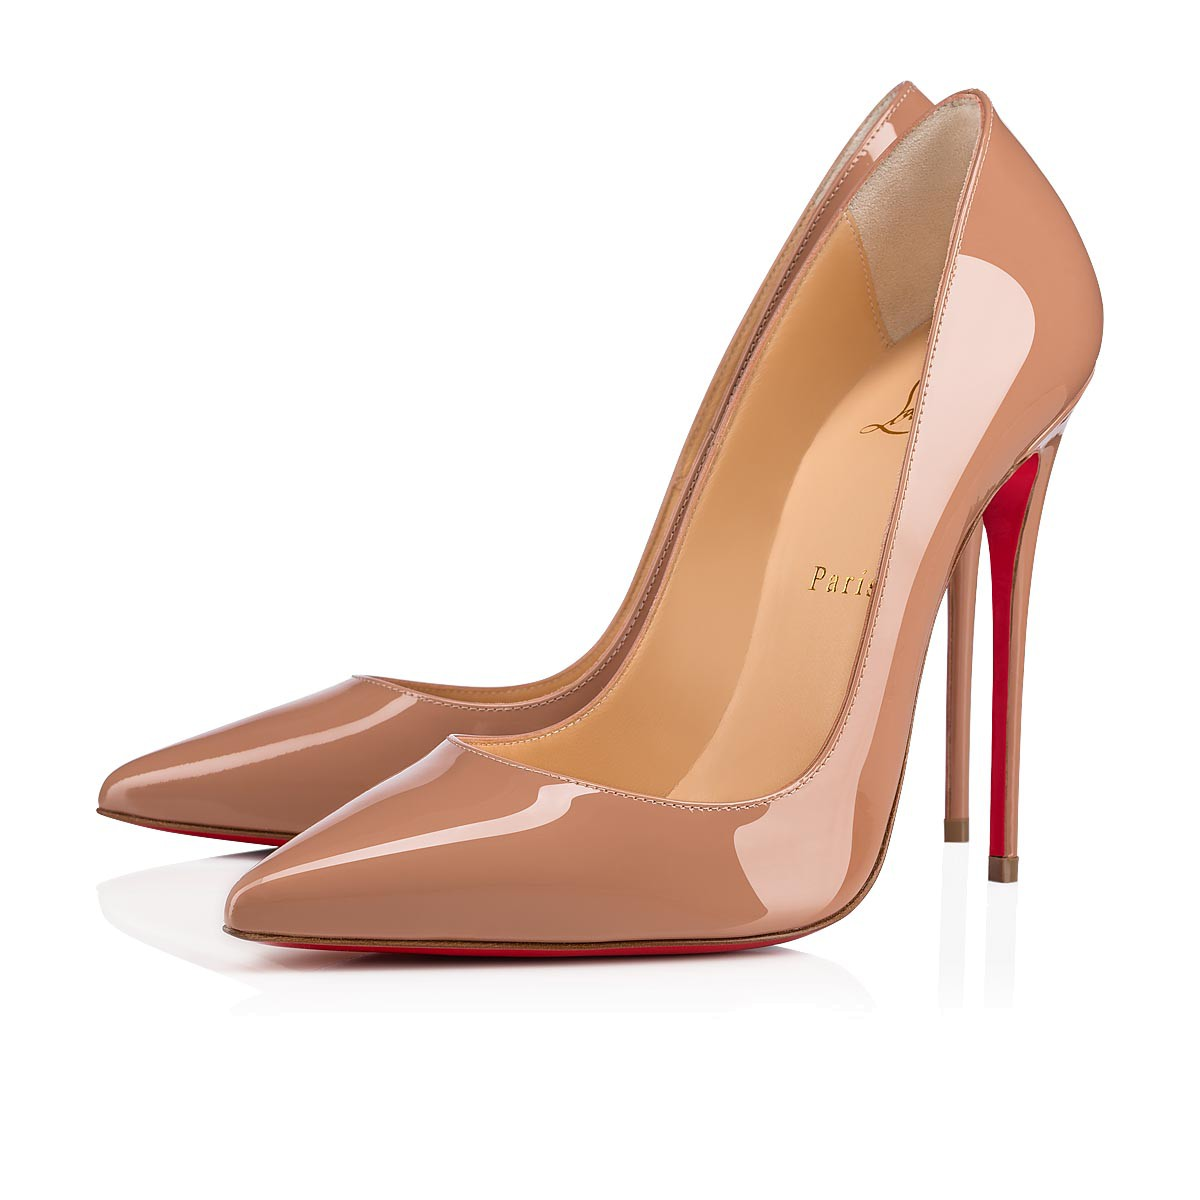 51017fbf05c So Kate 120 Nude Patent Leather - Women Shoes - Christian Louboutin